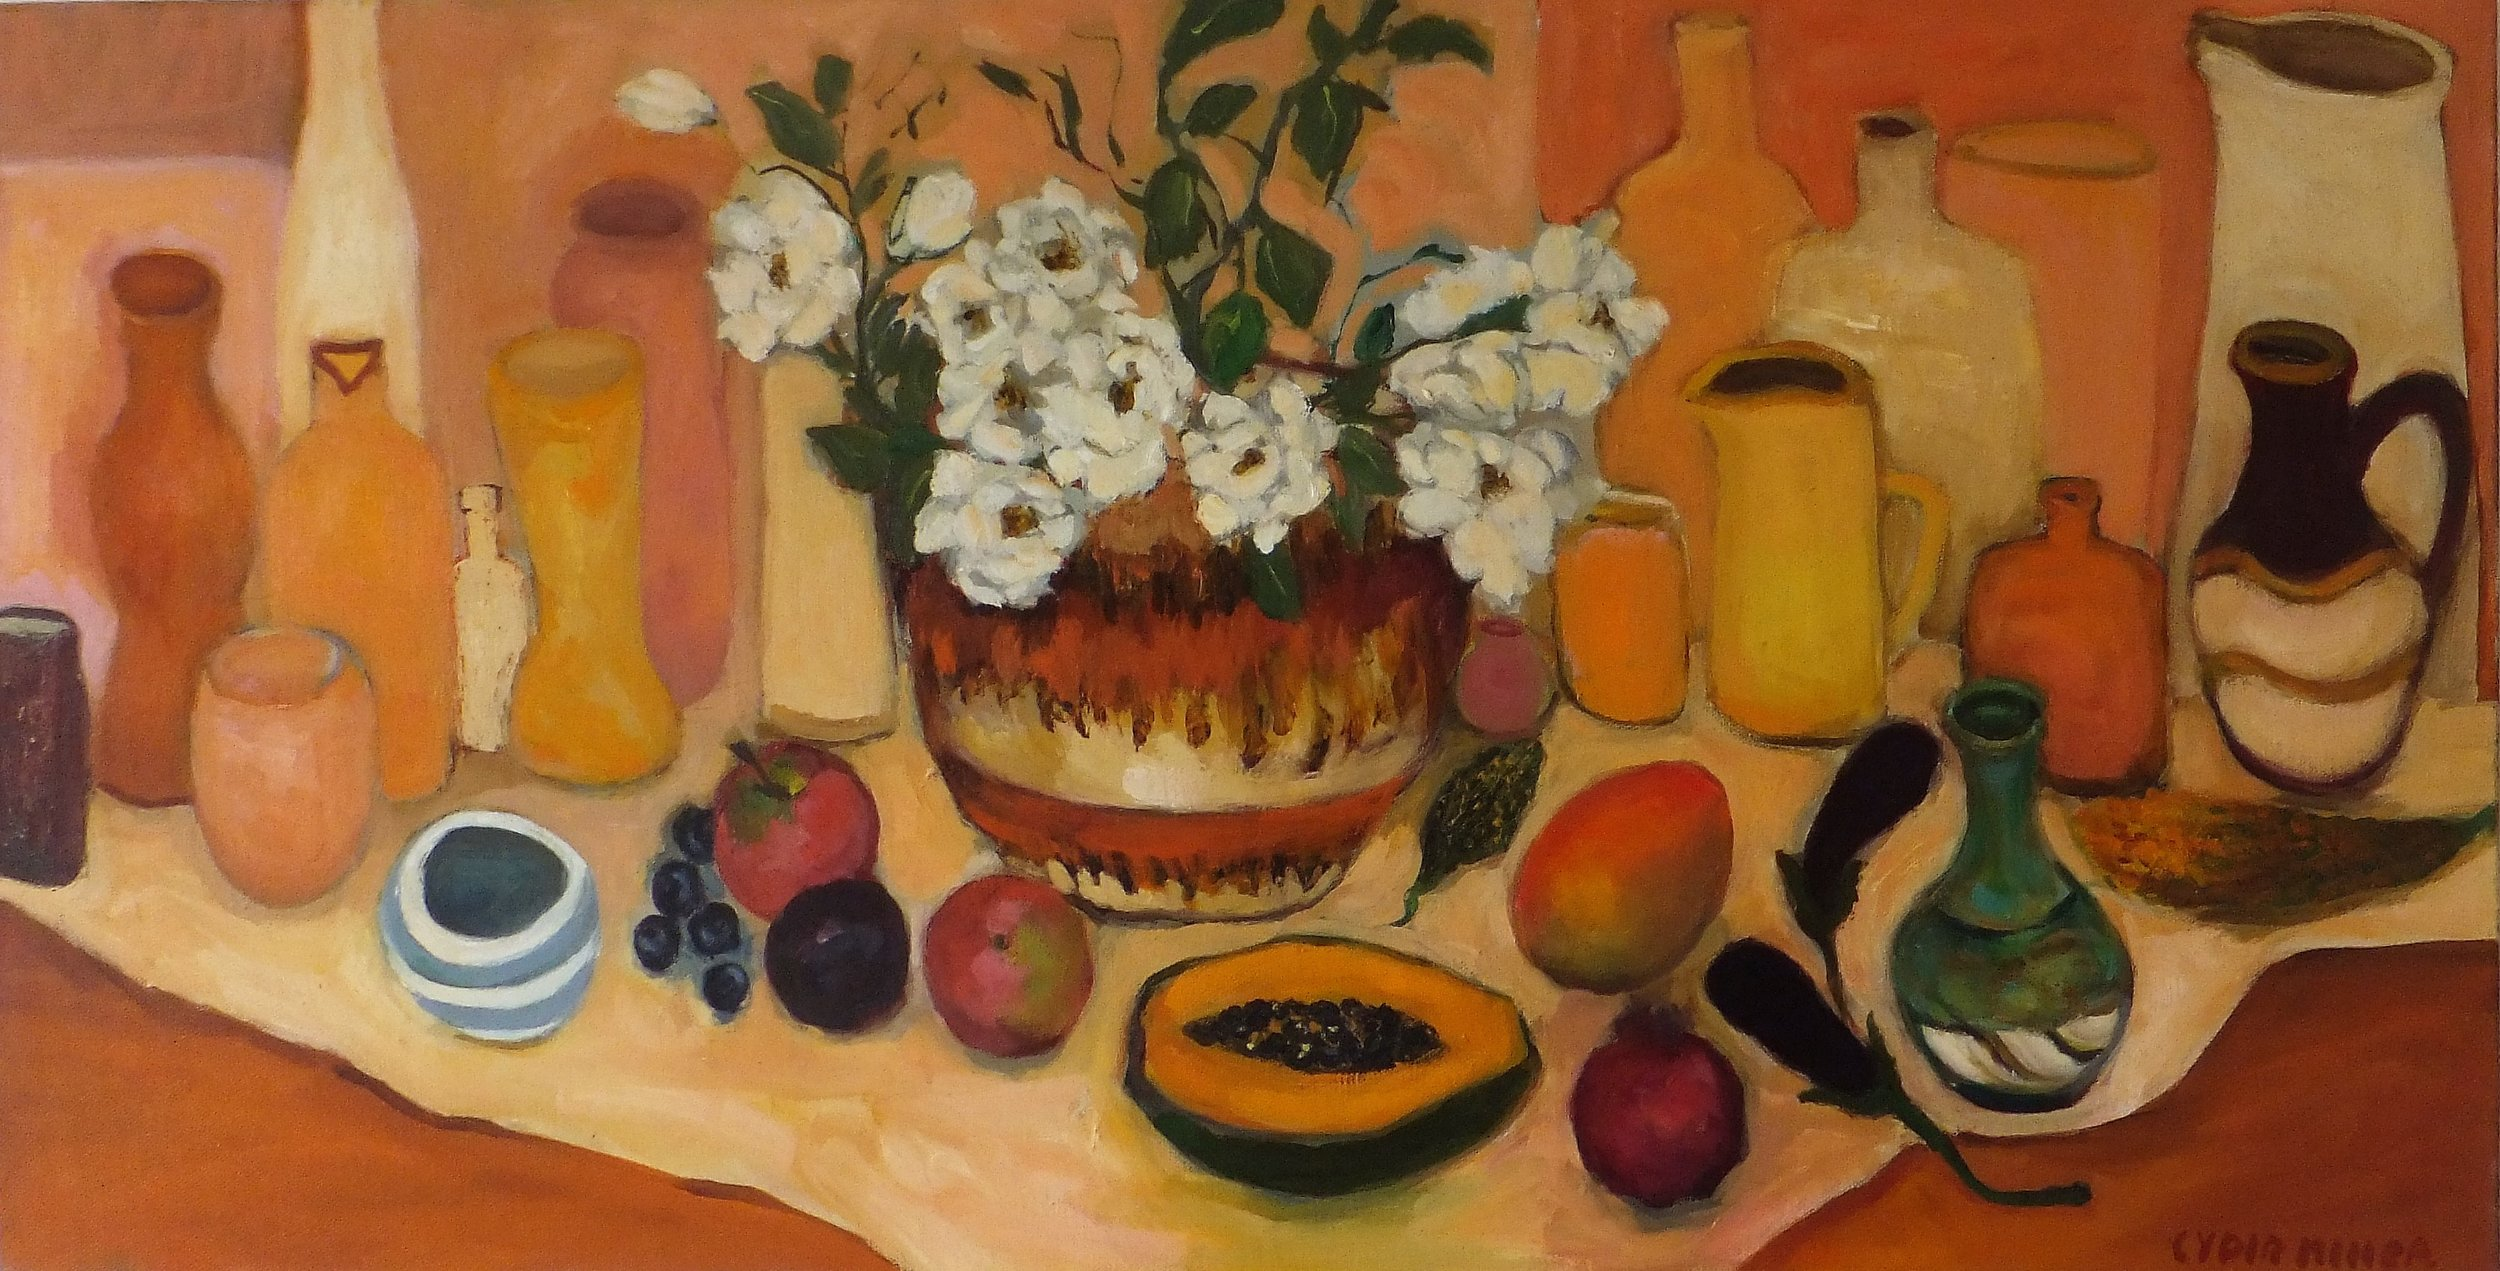 Lydia Miller, Still-Life with papaya, 2018 oil on canvas, 46 x 91cm $920.00 AVAILABLE contact info@gallery139.com.au